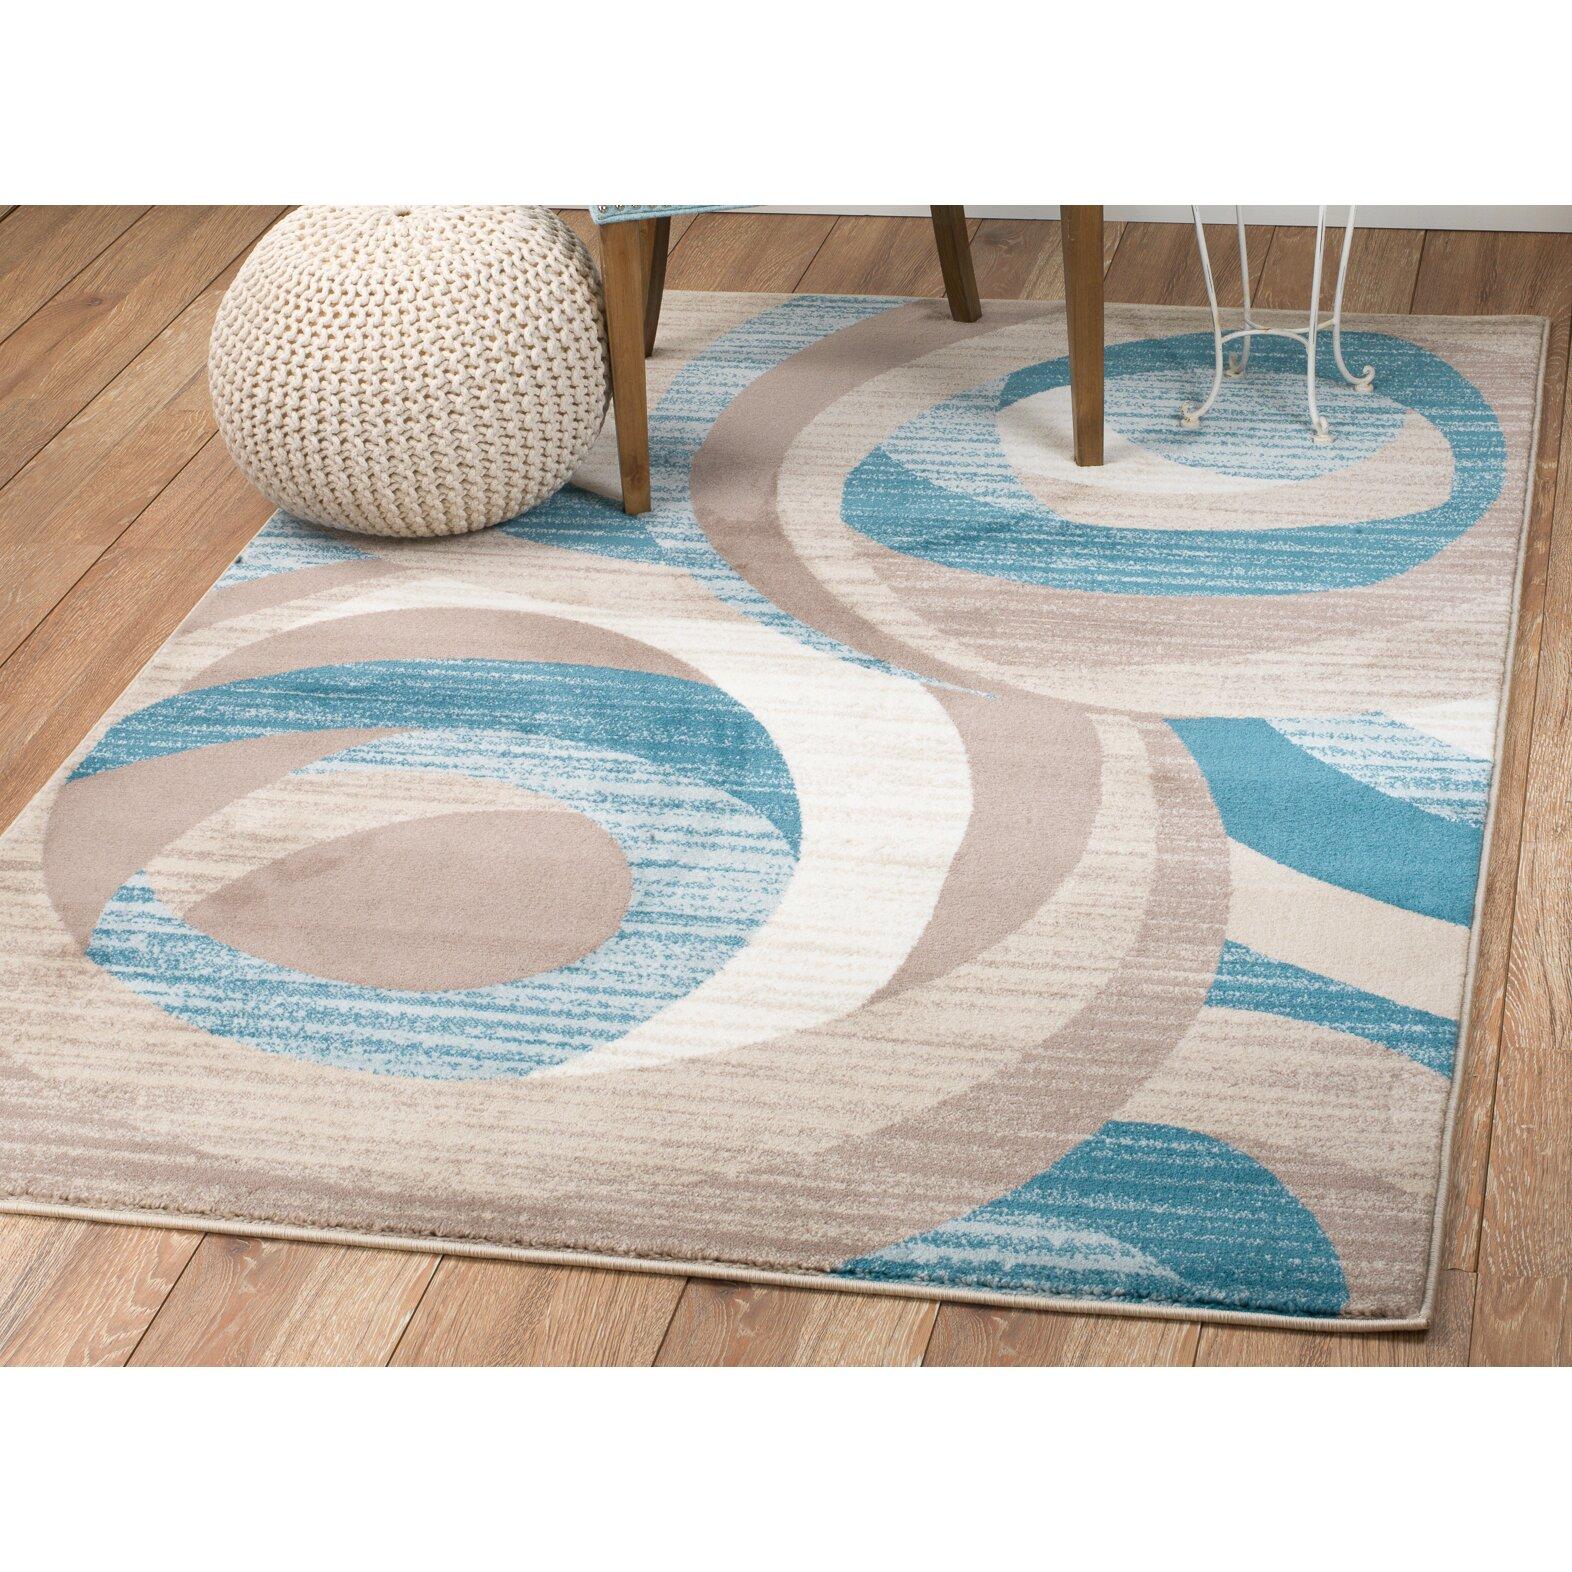 Rug and decor inc summit turquoise area rug reviews for Turquoise area rug